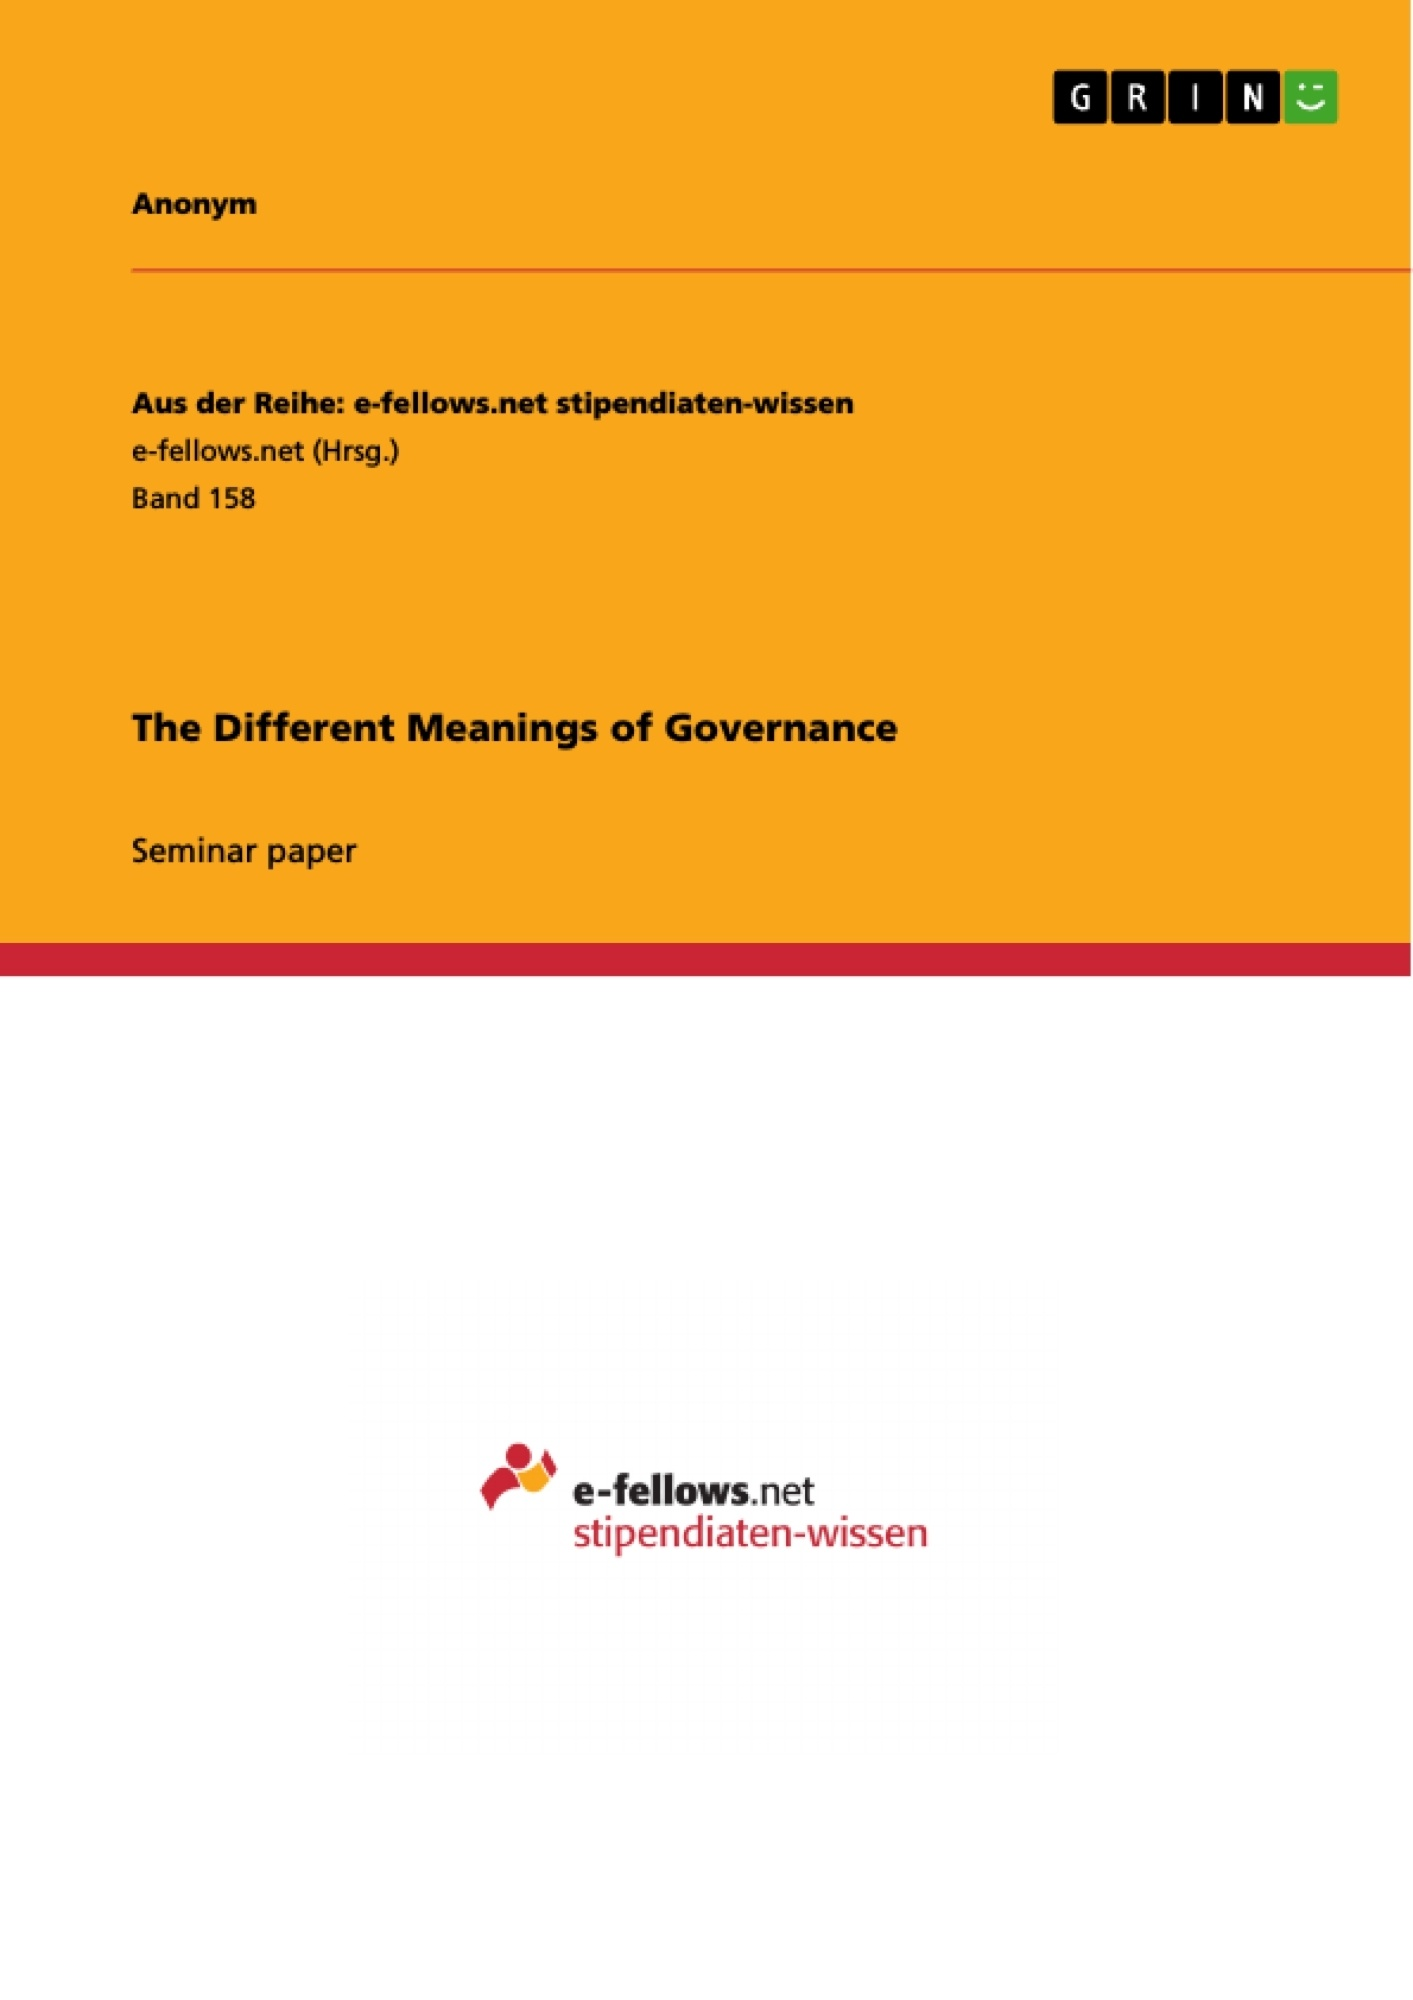 Title: The Different Meanings of Governance